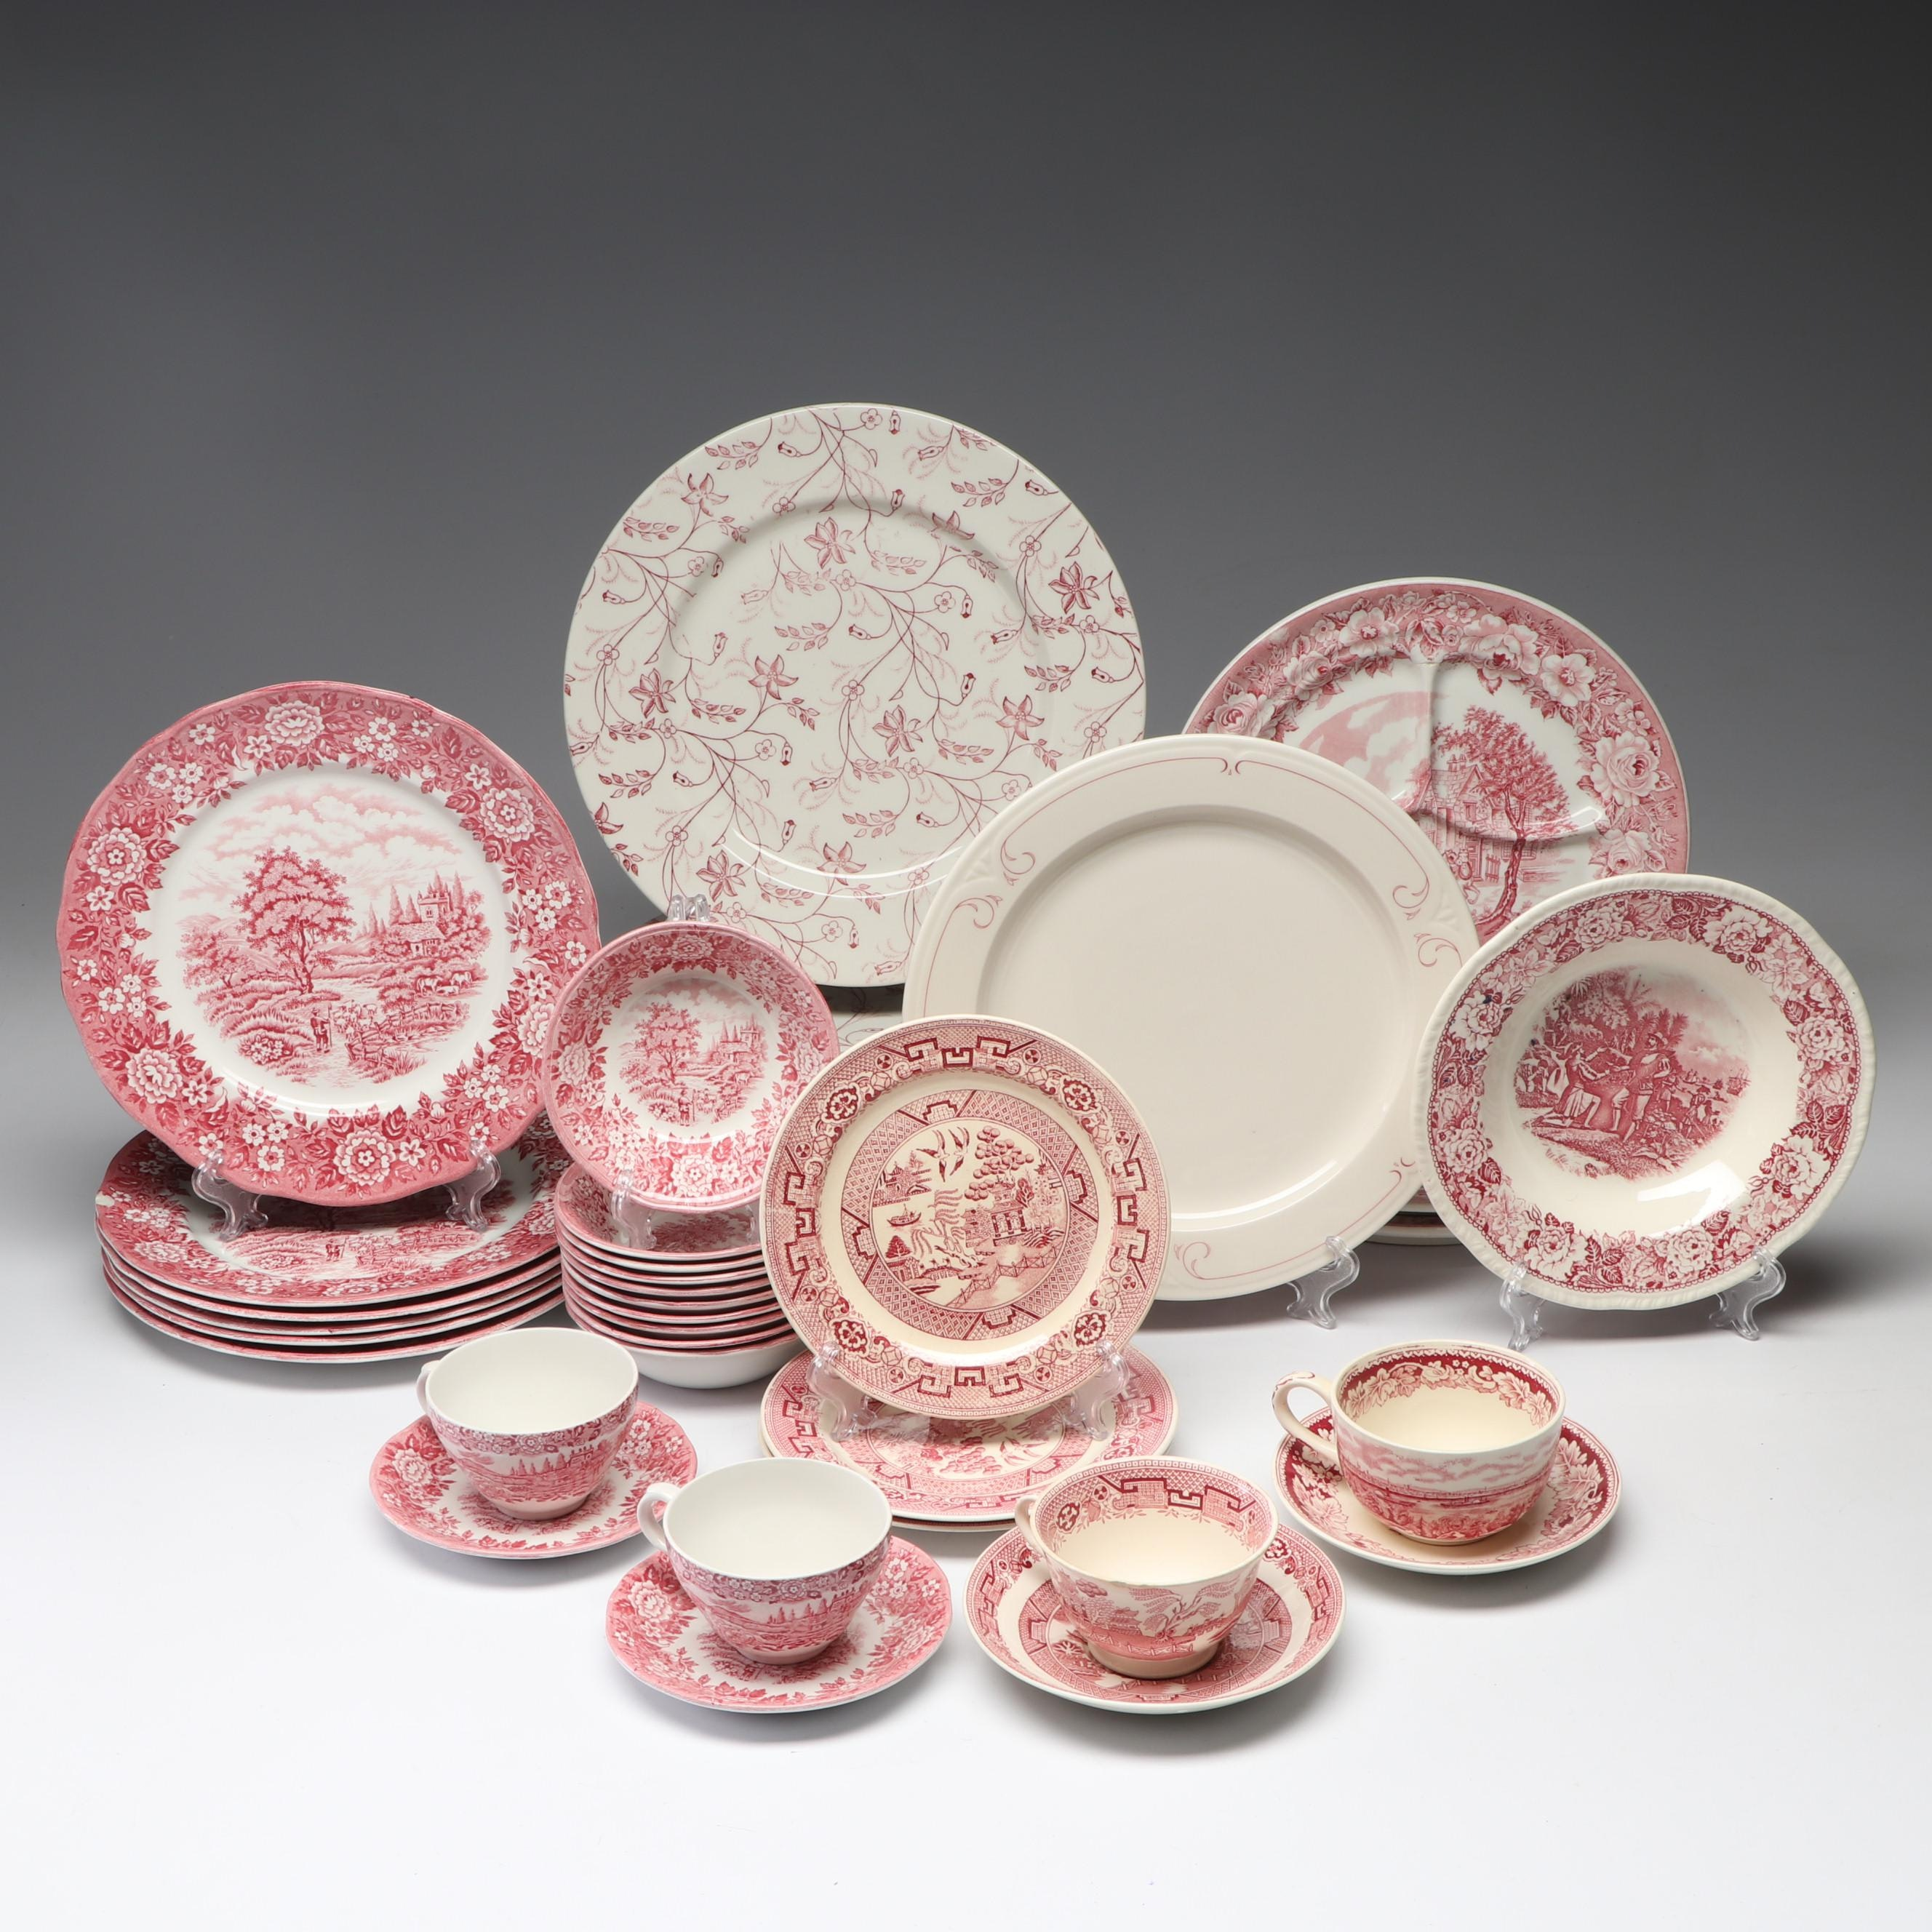 Pink and White Transferware Dinnerware Including Homer Laughlin